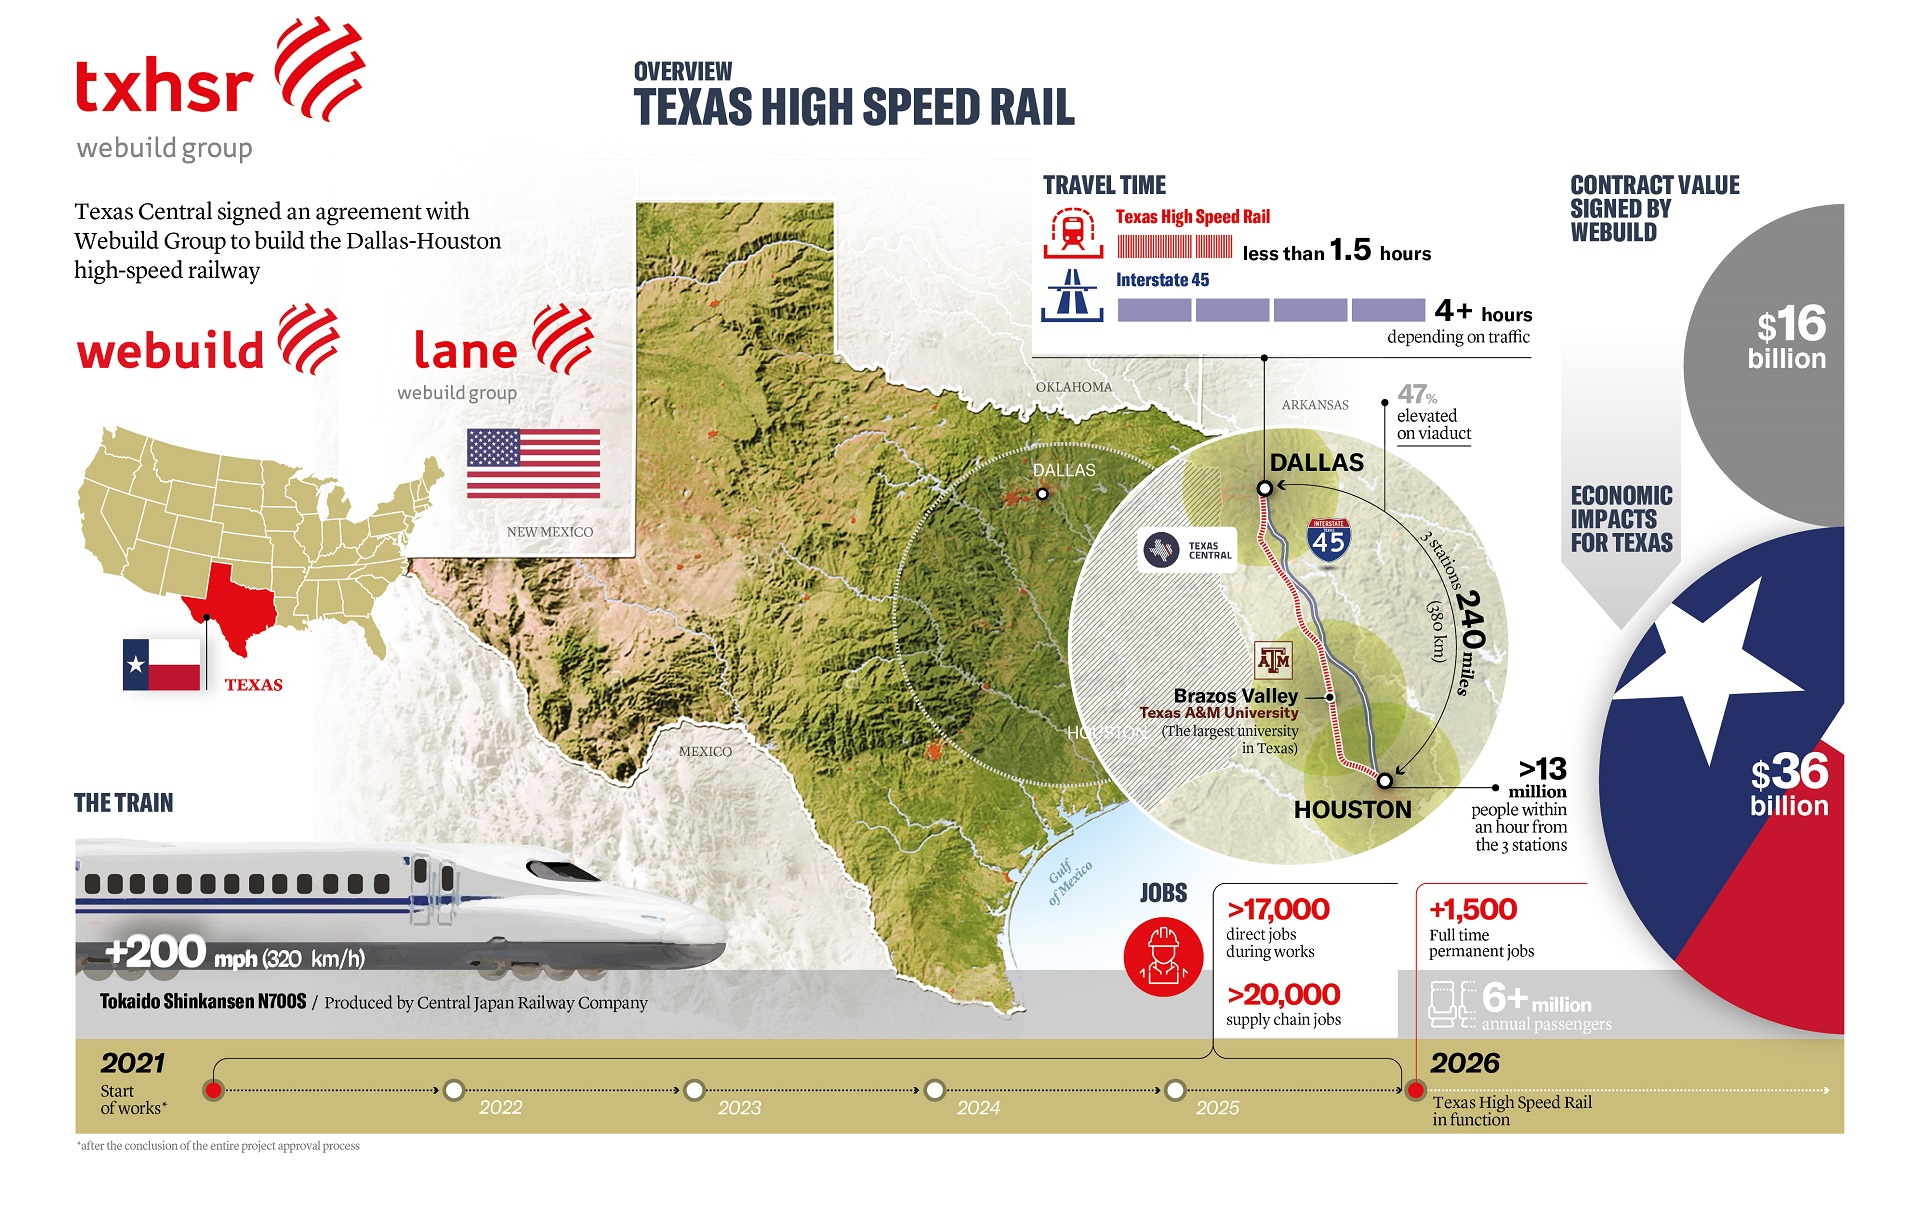 Webuild and Lane Construction in $16 billion mega High-Speed Rail contract with Texas Central